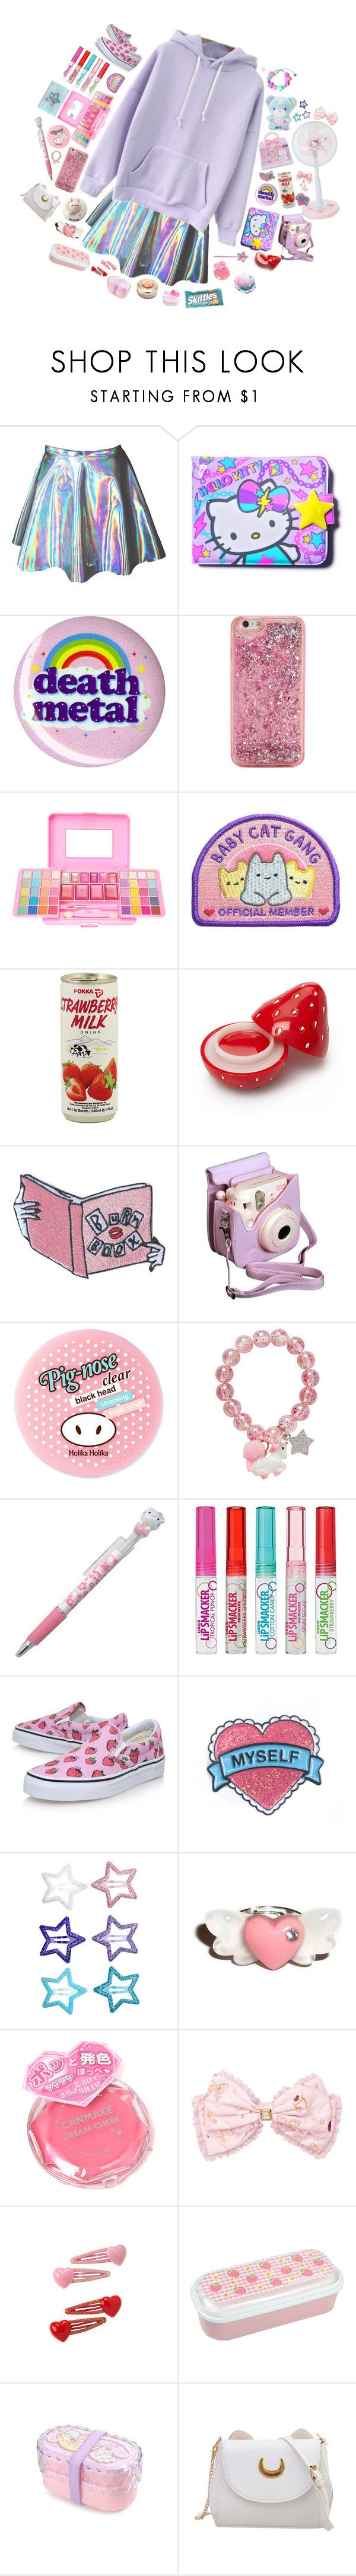 """""""I only live to see people fail"""" by murasaki666 ❤ liked on Polyvore featuring SANRIO, Hot Topic, ban.do, Forever 21, Fuji, Holika Holika, Hello Kitty, Vans, H&M and Canmake"""